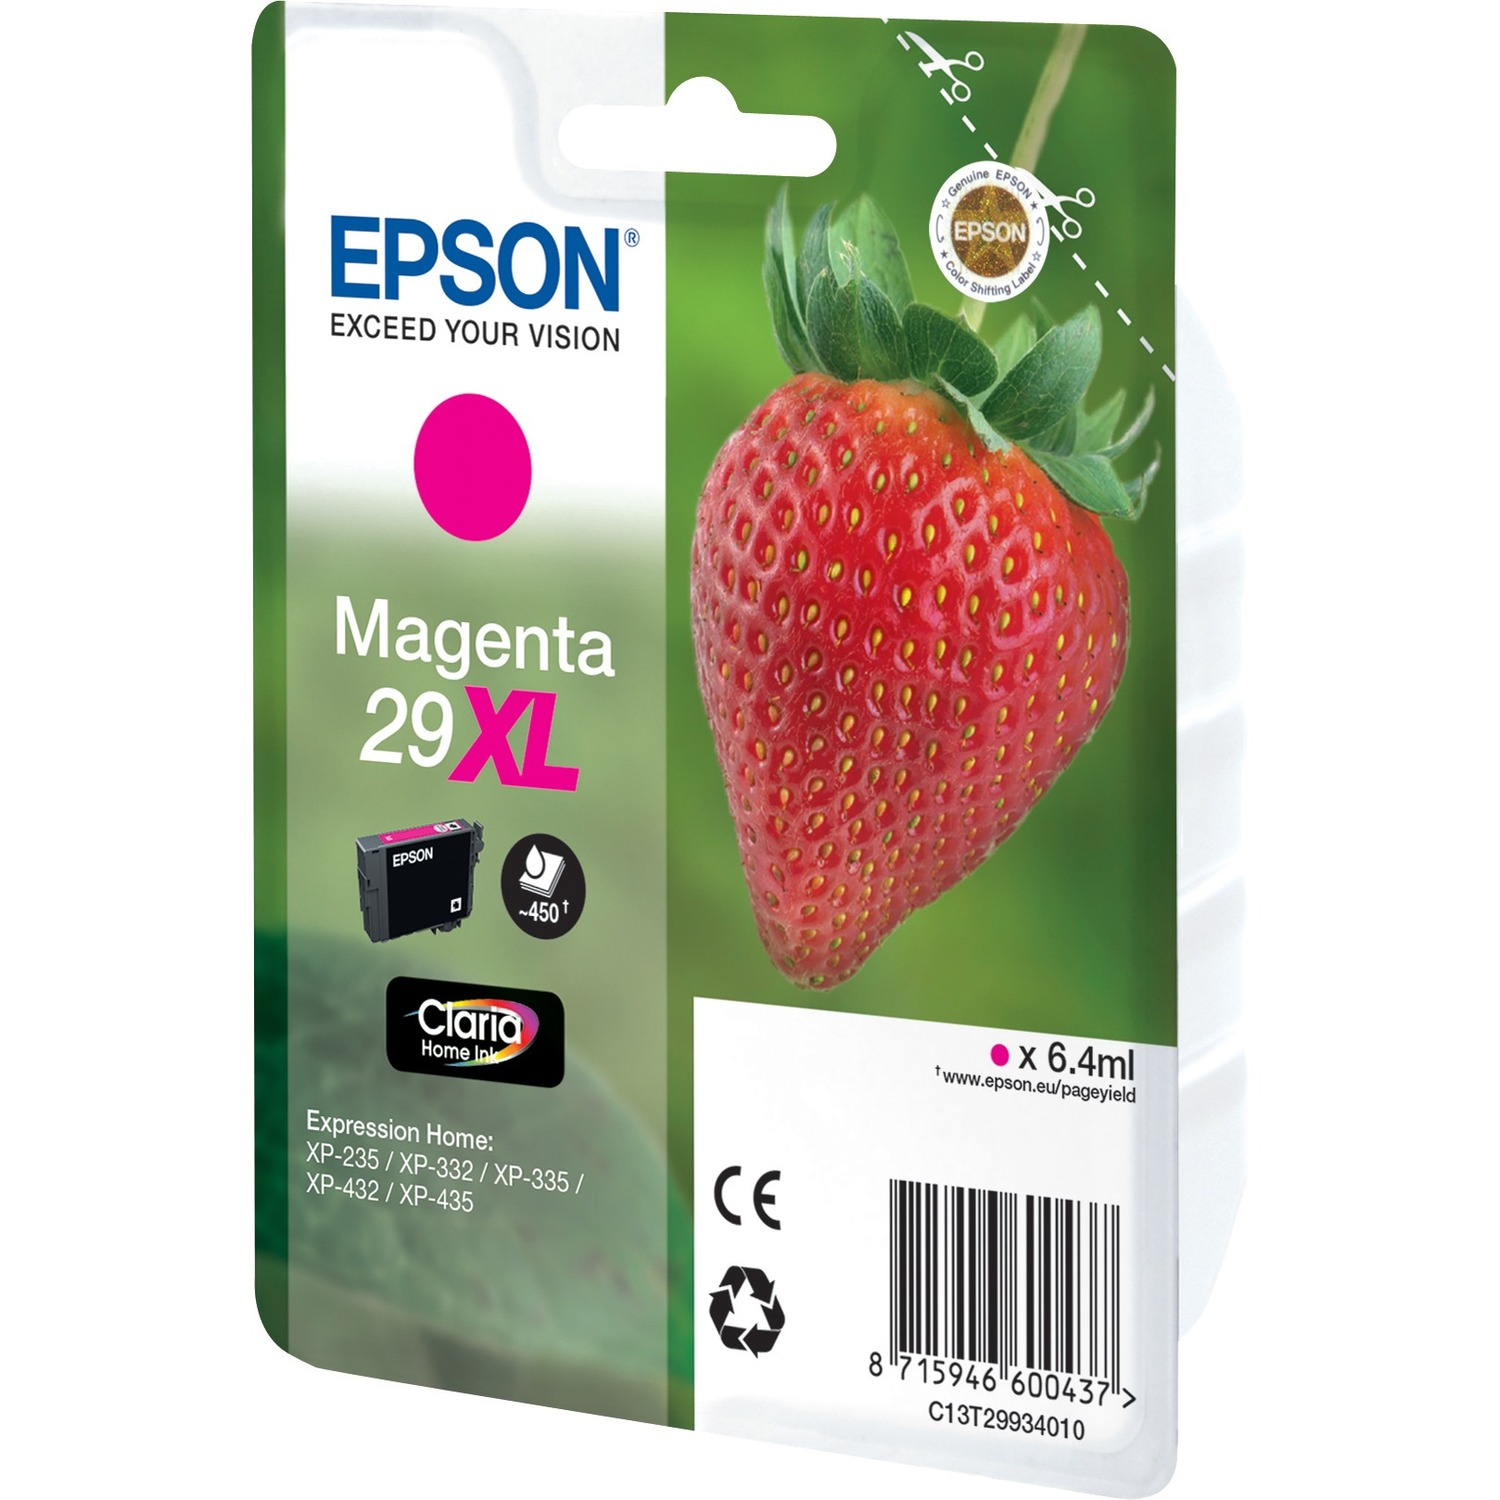 Epson Claria 29XL Ink Cartridge - Magenta - Inkjet - 450 Page - 1 / Pack